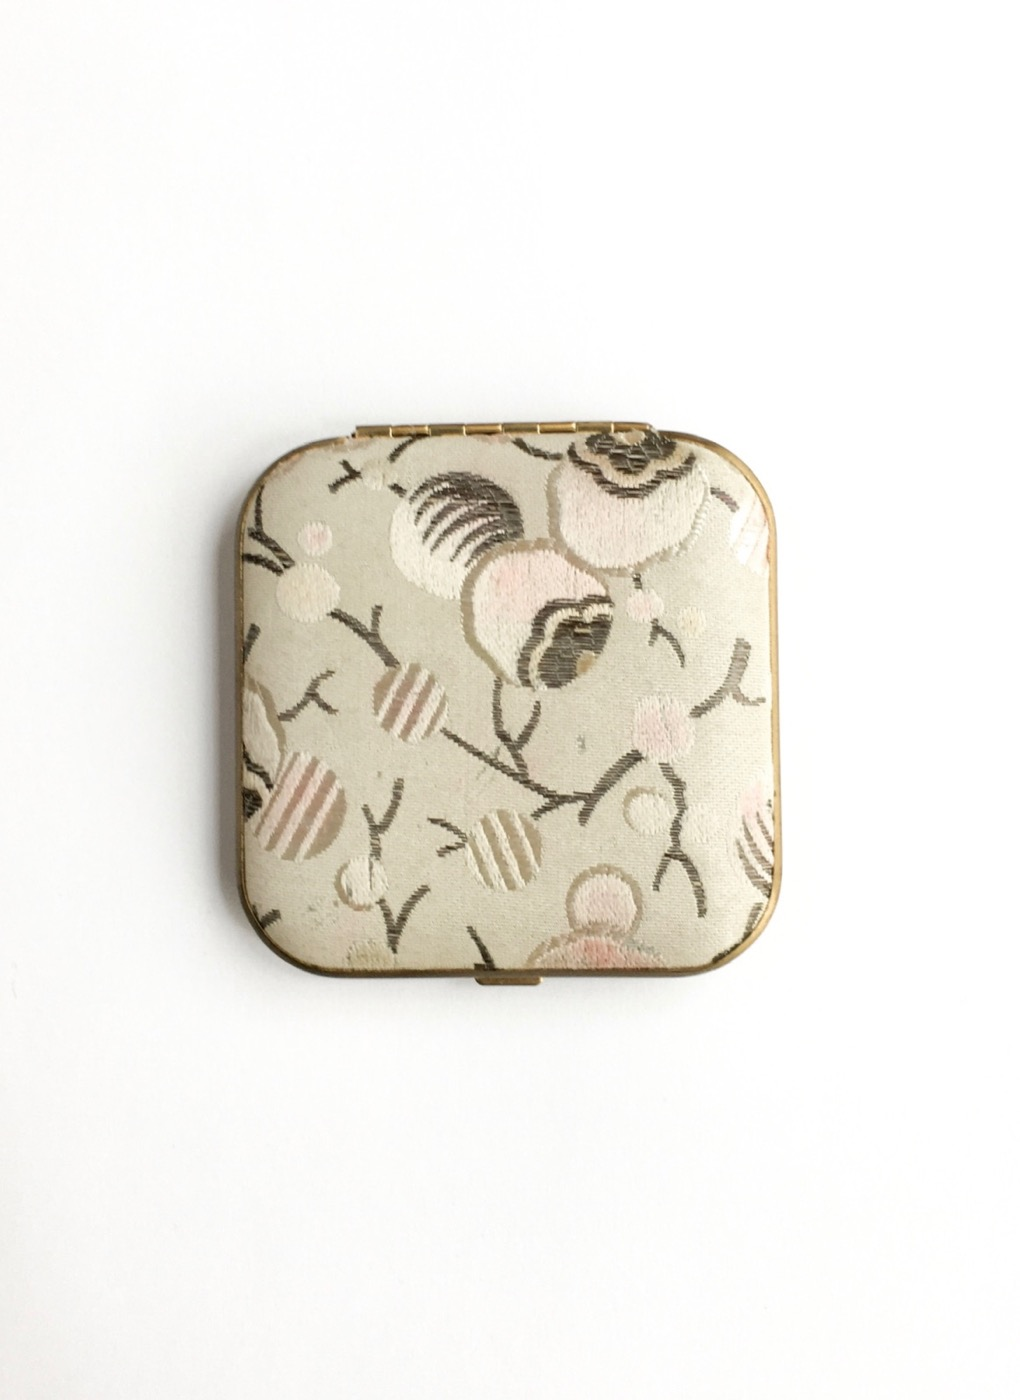 1920s-30s-Art-Deco-fabric-branches-buds-Mondaine-makeup-compact